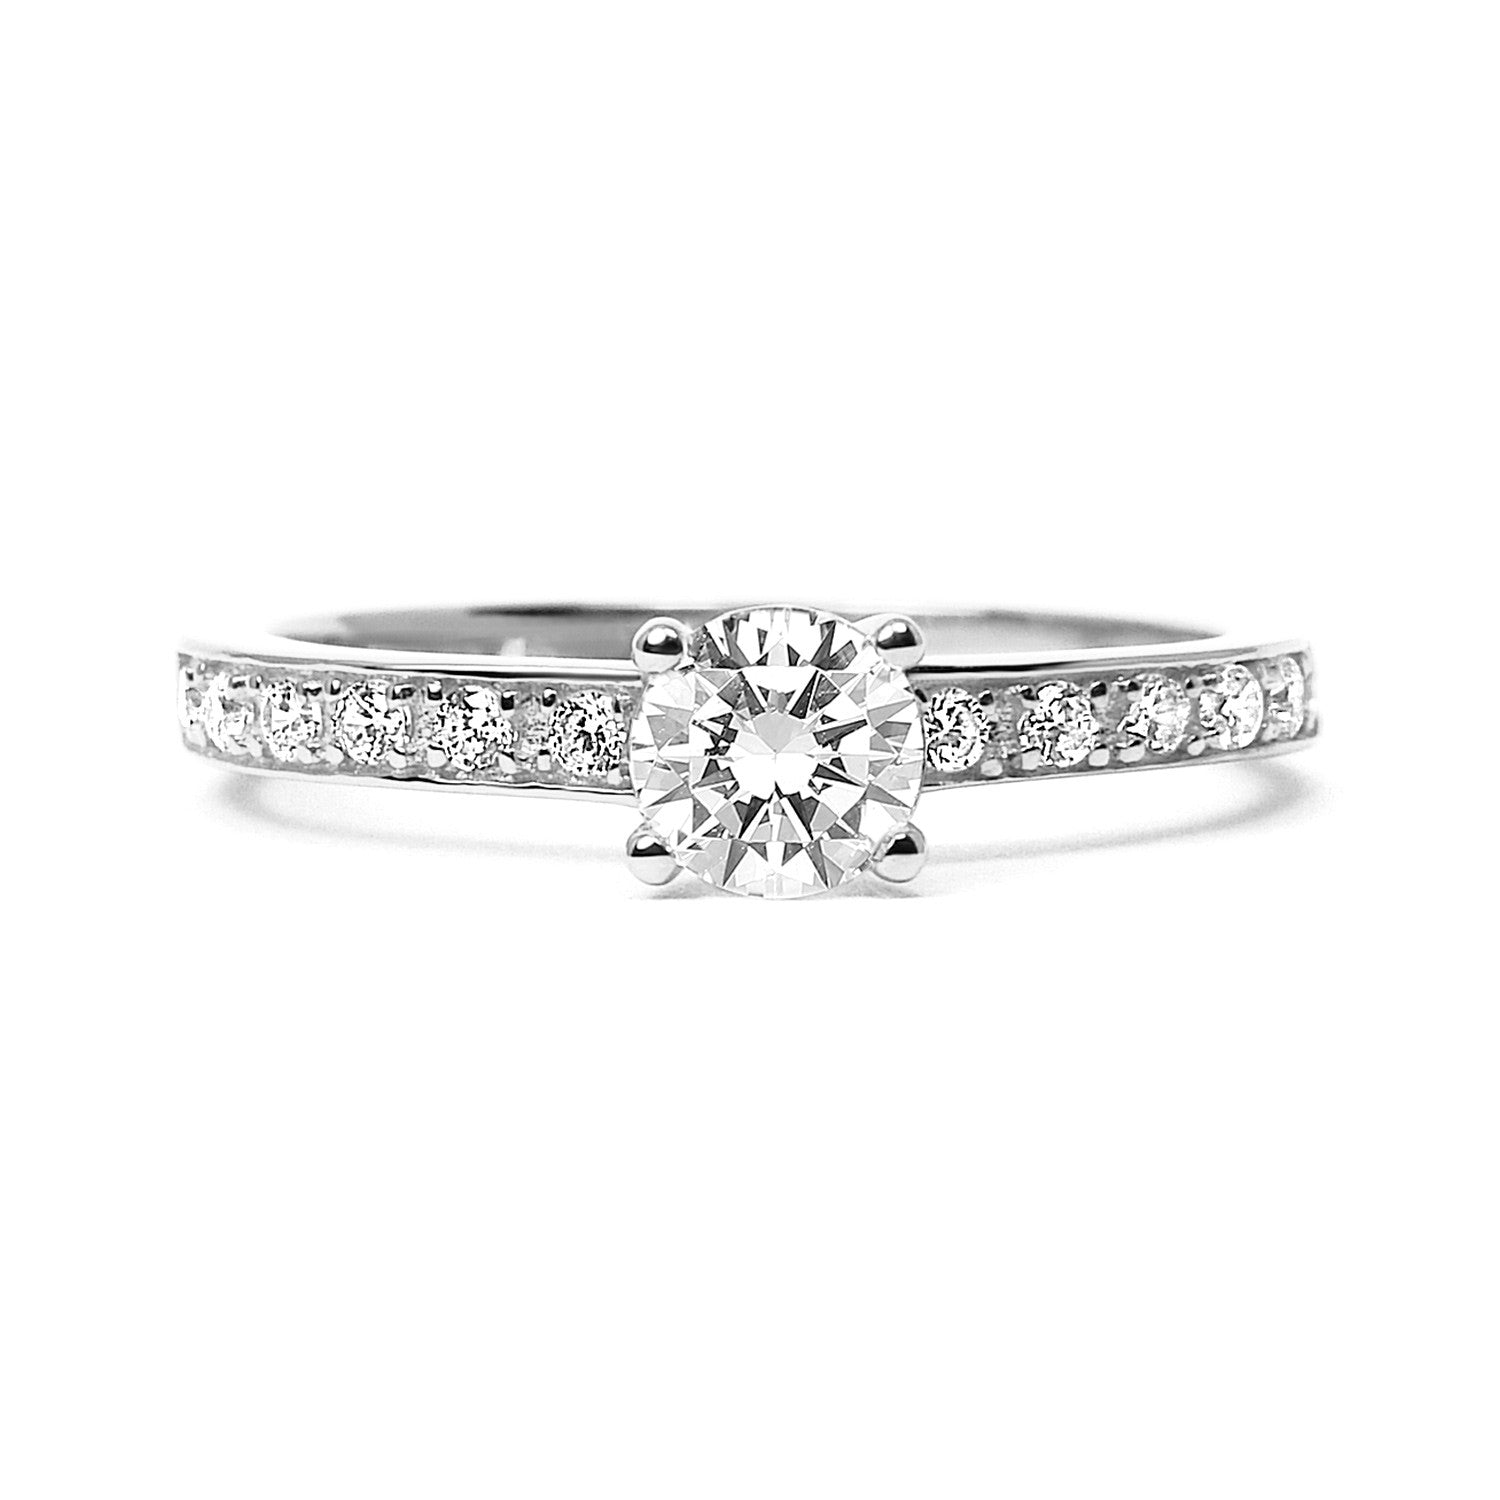 Aurora Borealis Ethical Diamond Platinum Engagement Ring